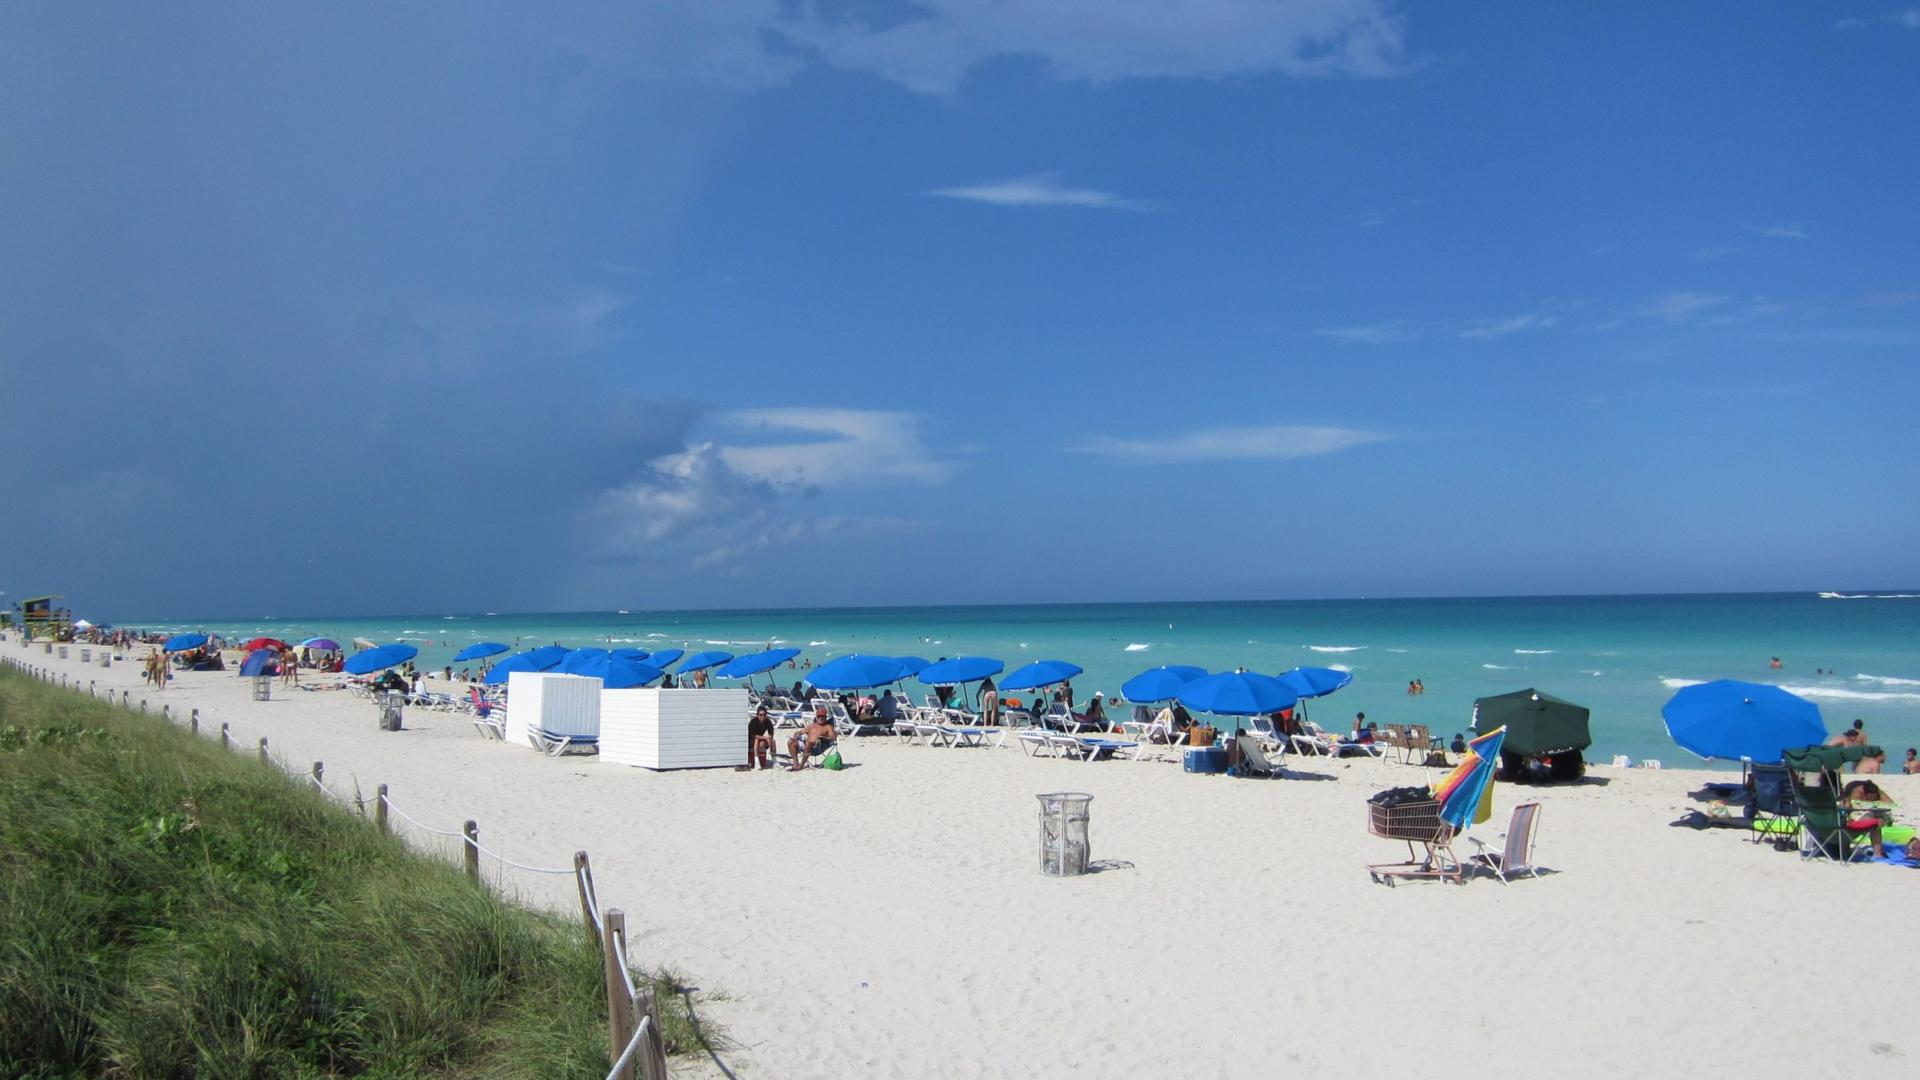 South Beach Miami Florida HD Wallpaper of Beach   hdwallpaper2013 1920x1080